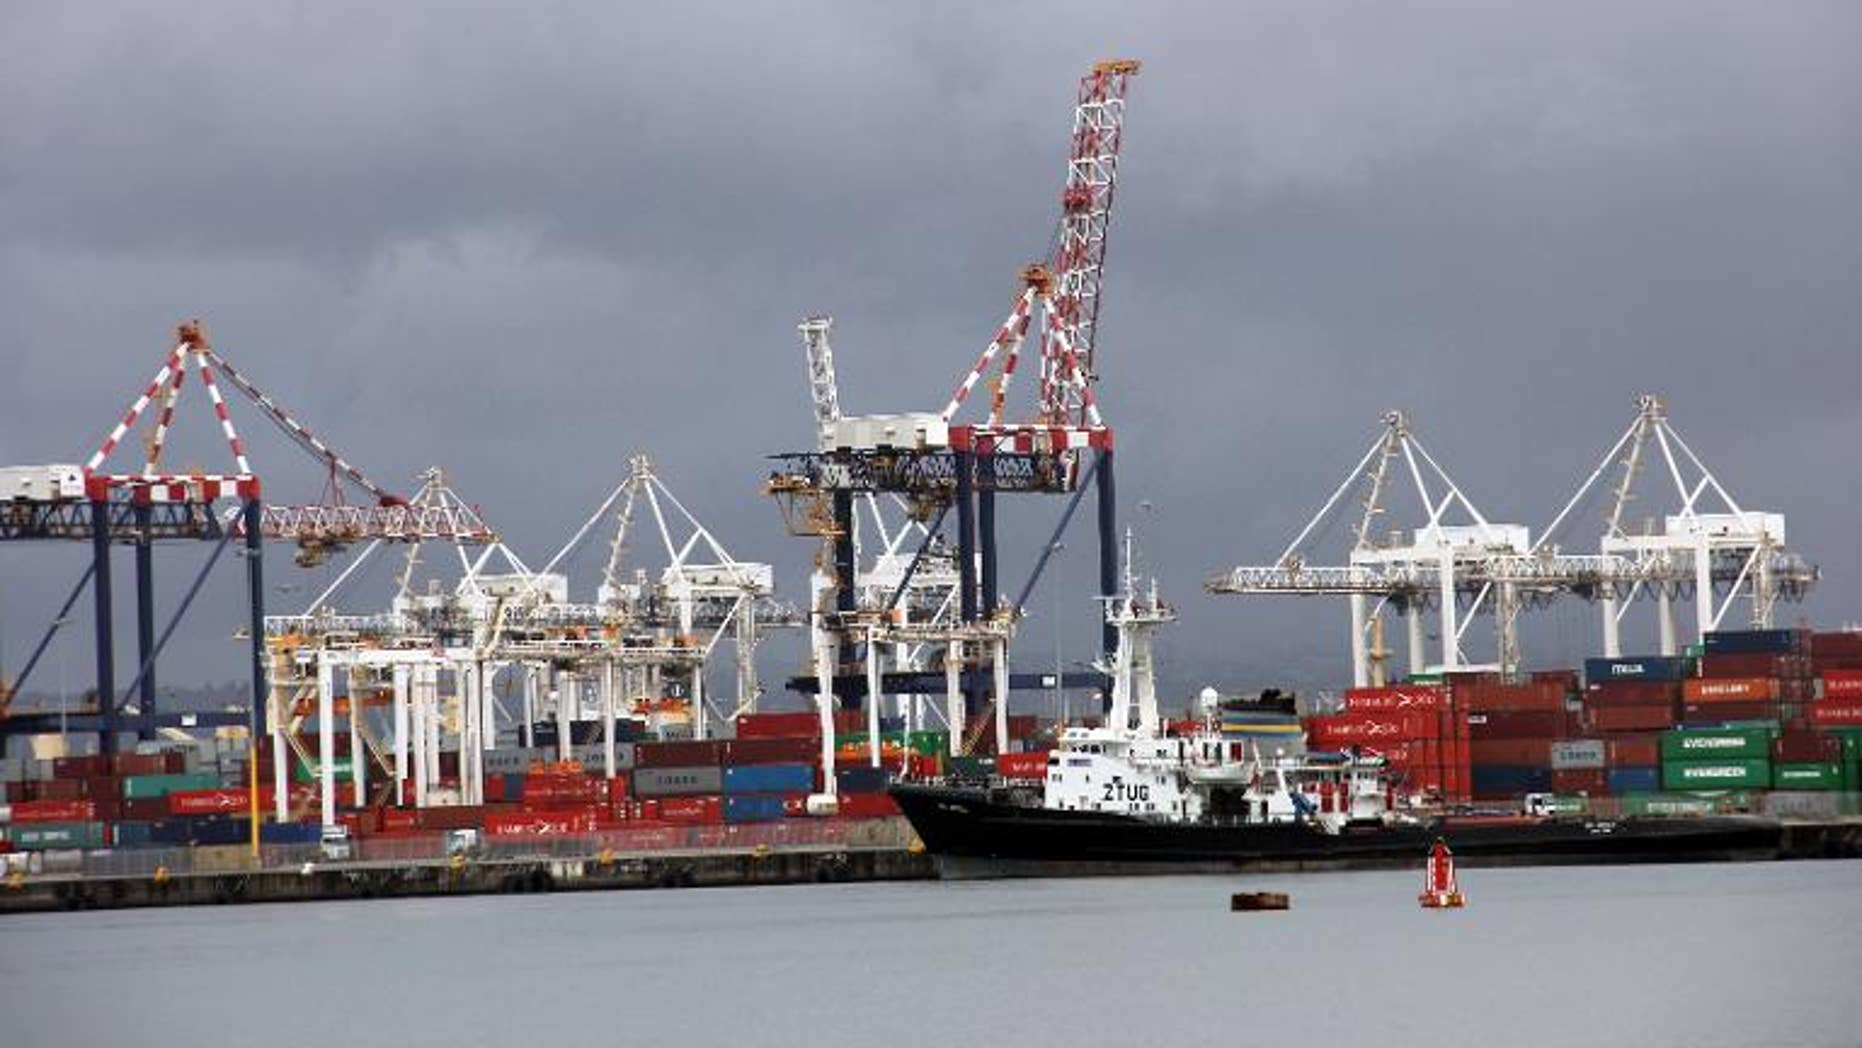 Cargo ship and cranes at the port of Durban on March 25, 2013